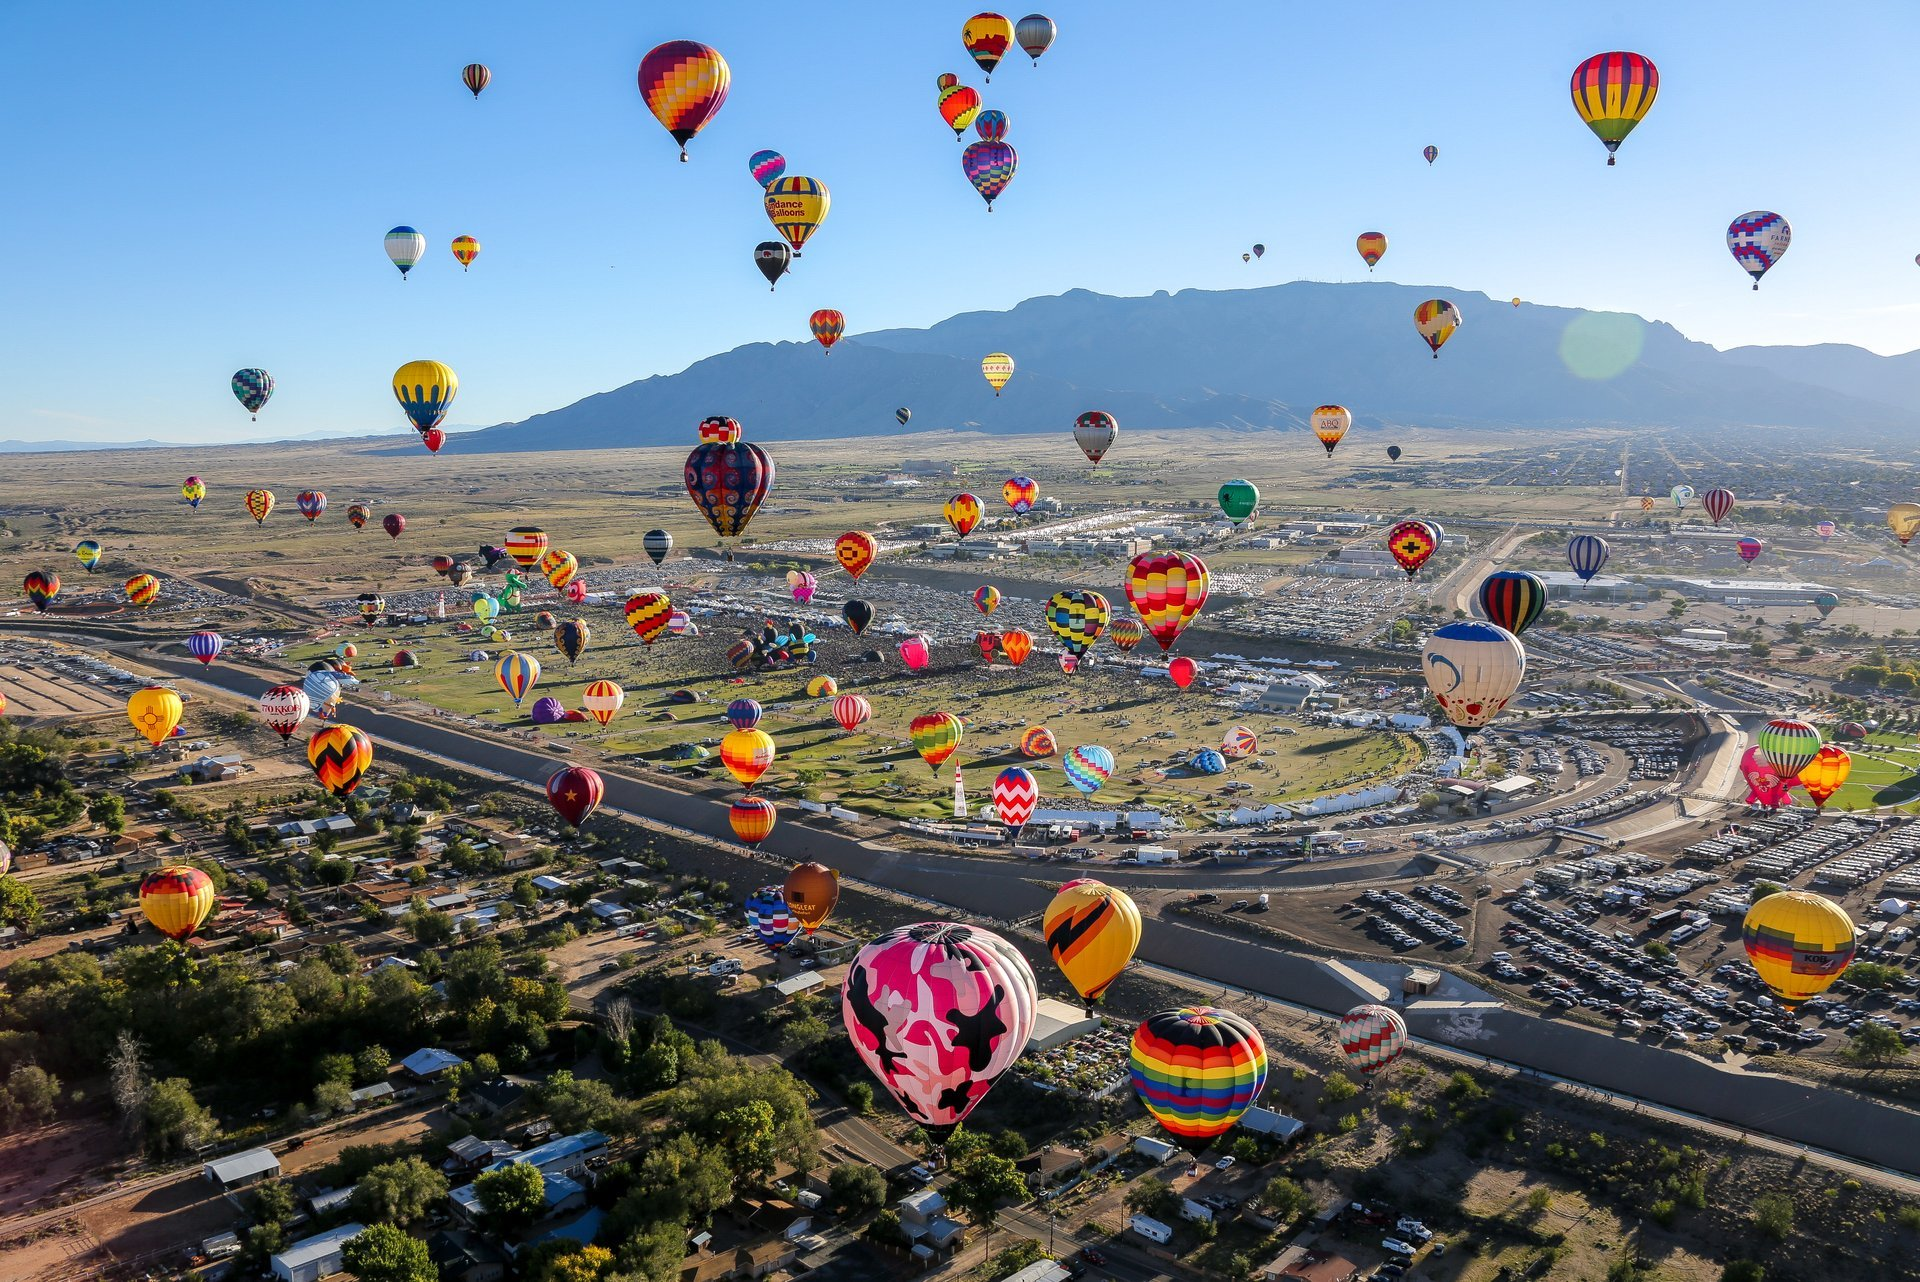 Albuquerque International Balloon Fiesta in New Mexico 2020 - Best Time